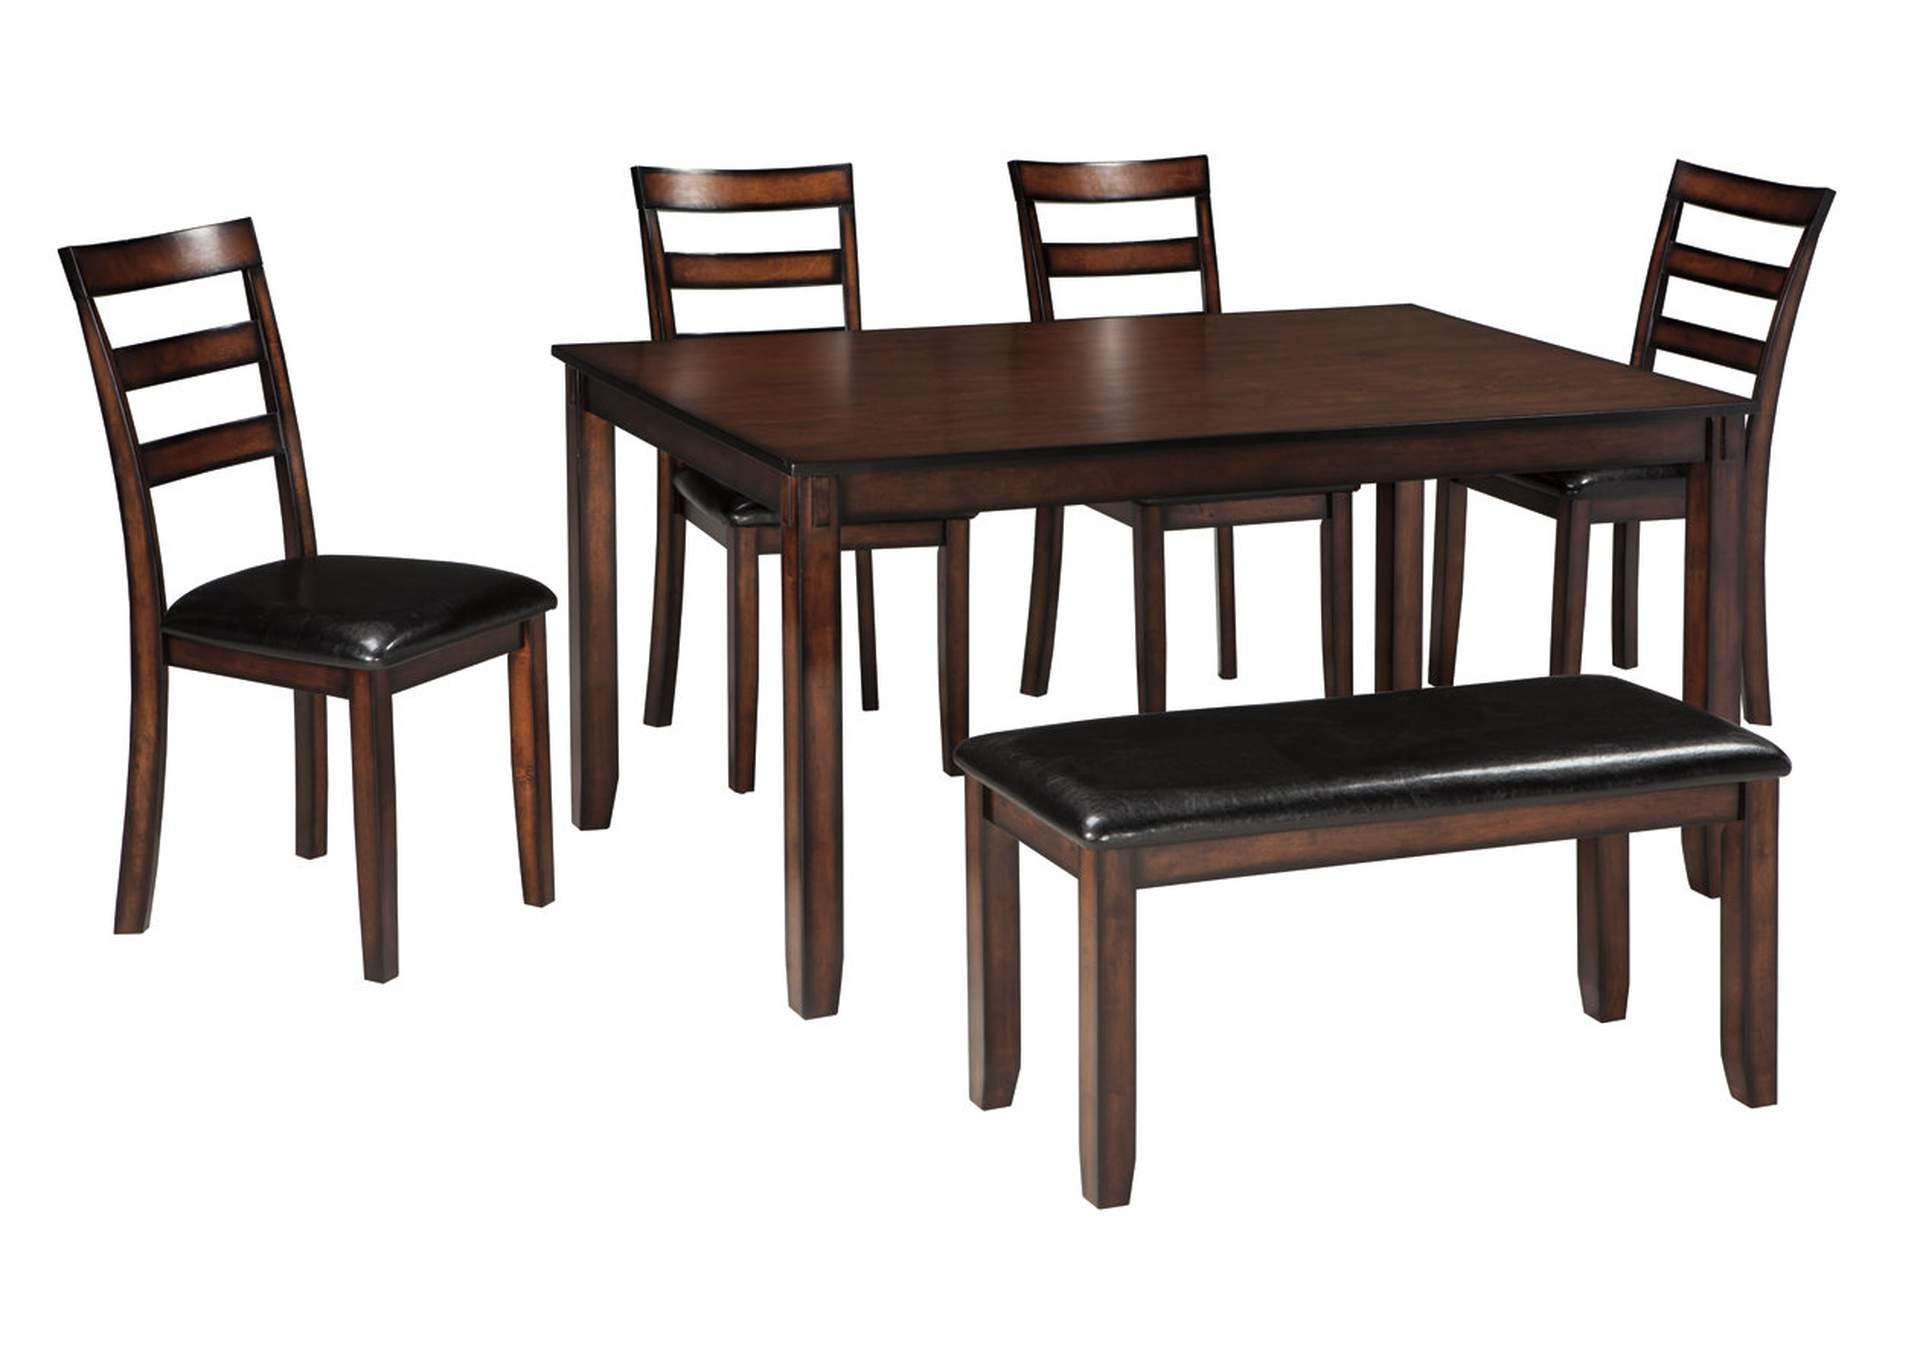 Incroyable Coviar Brown Dining Room Table Set,Signature Design By Ashley